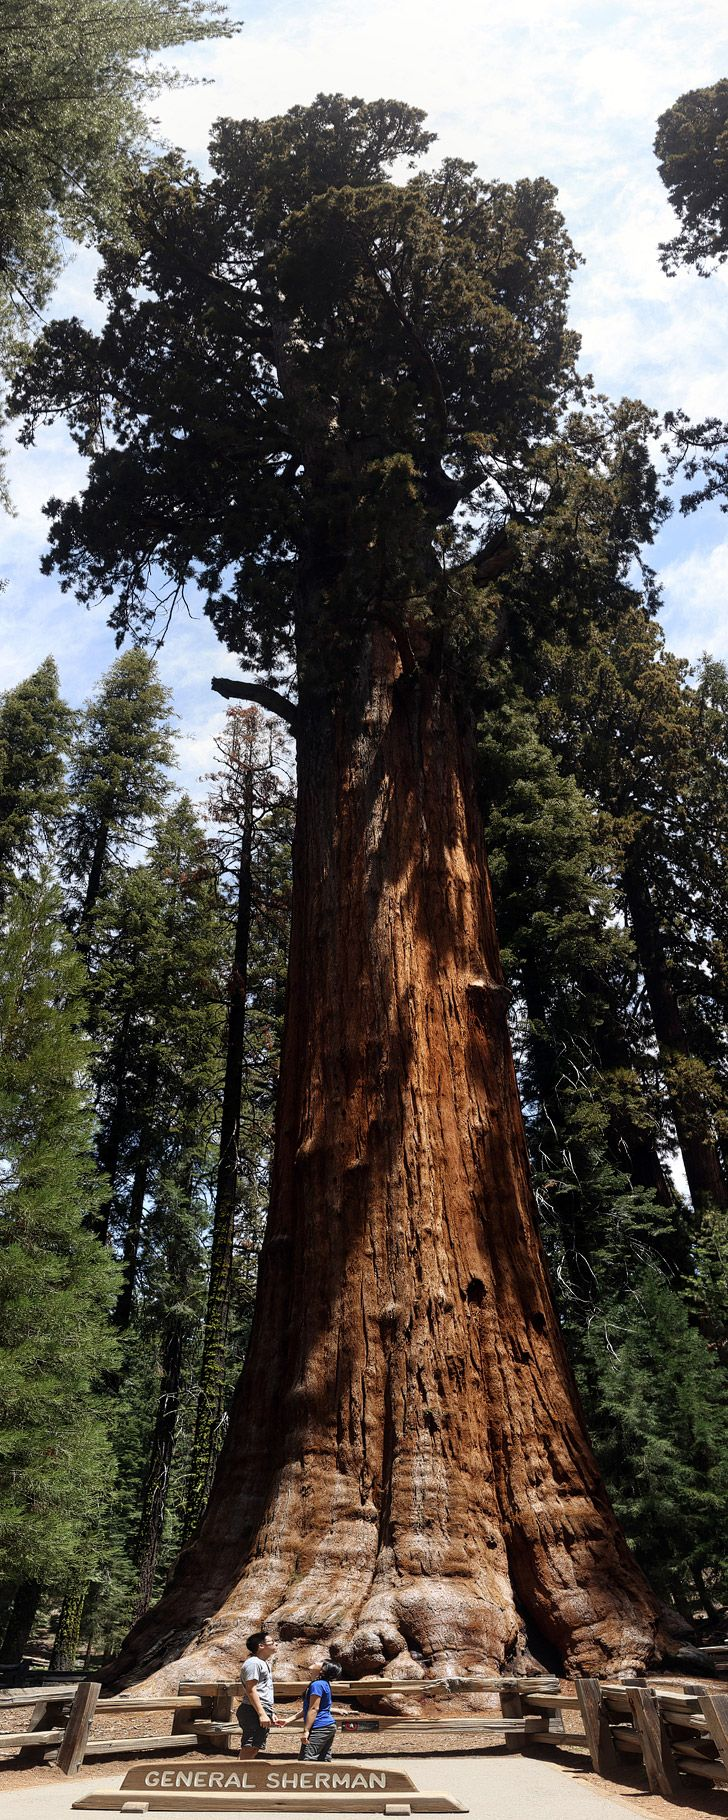 General Sherman Tree Sequoia National Park - The Largest Tree By Volume in the World // localadventurer.com